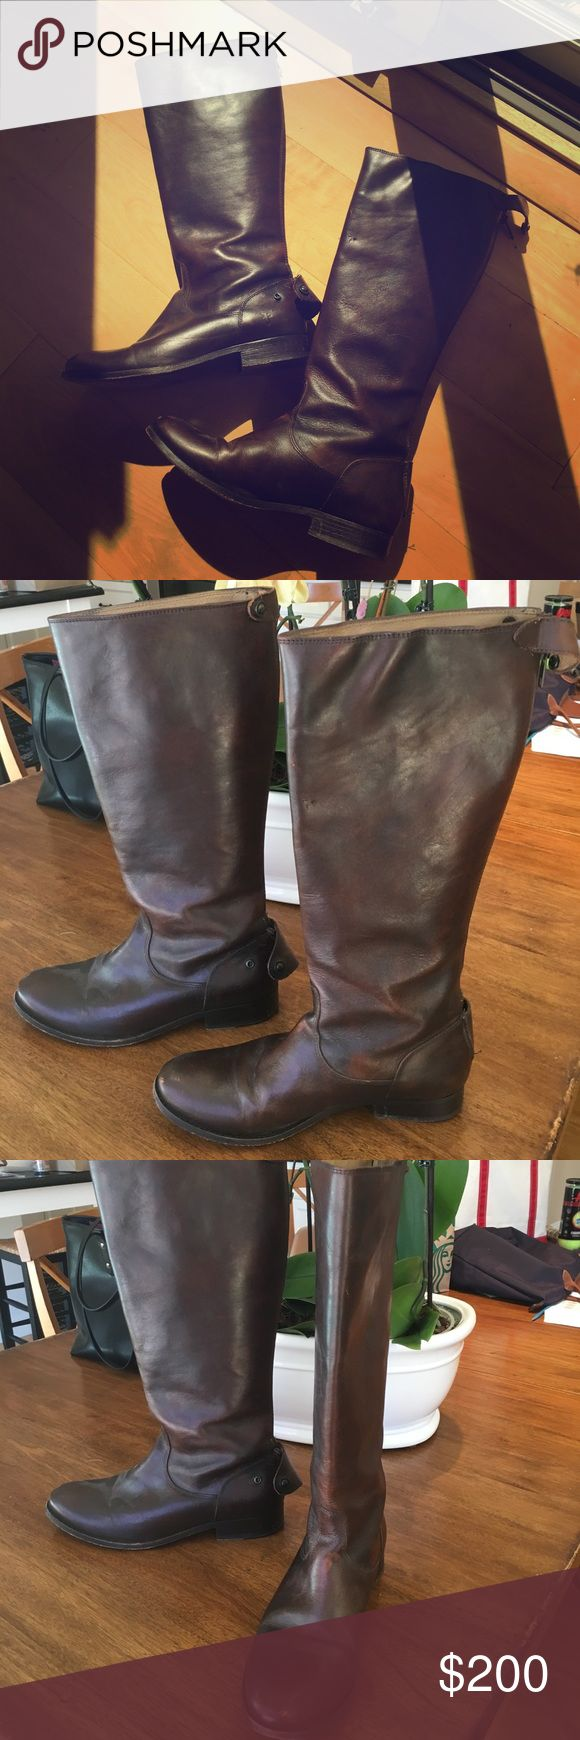 Frye Melissa Button Back Zip Boots (Talk) Tall brown leather boots with wide calf and zippers and clasps on back.  Slight scuffing but barely worn and in great condition! Originally bought for 388 Frye Shoes Winter & Rain Boots